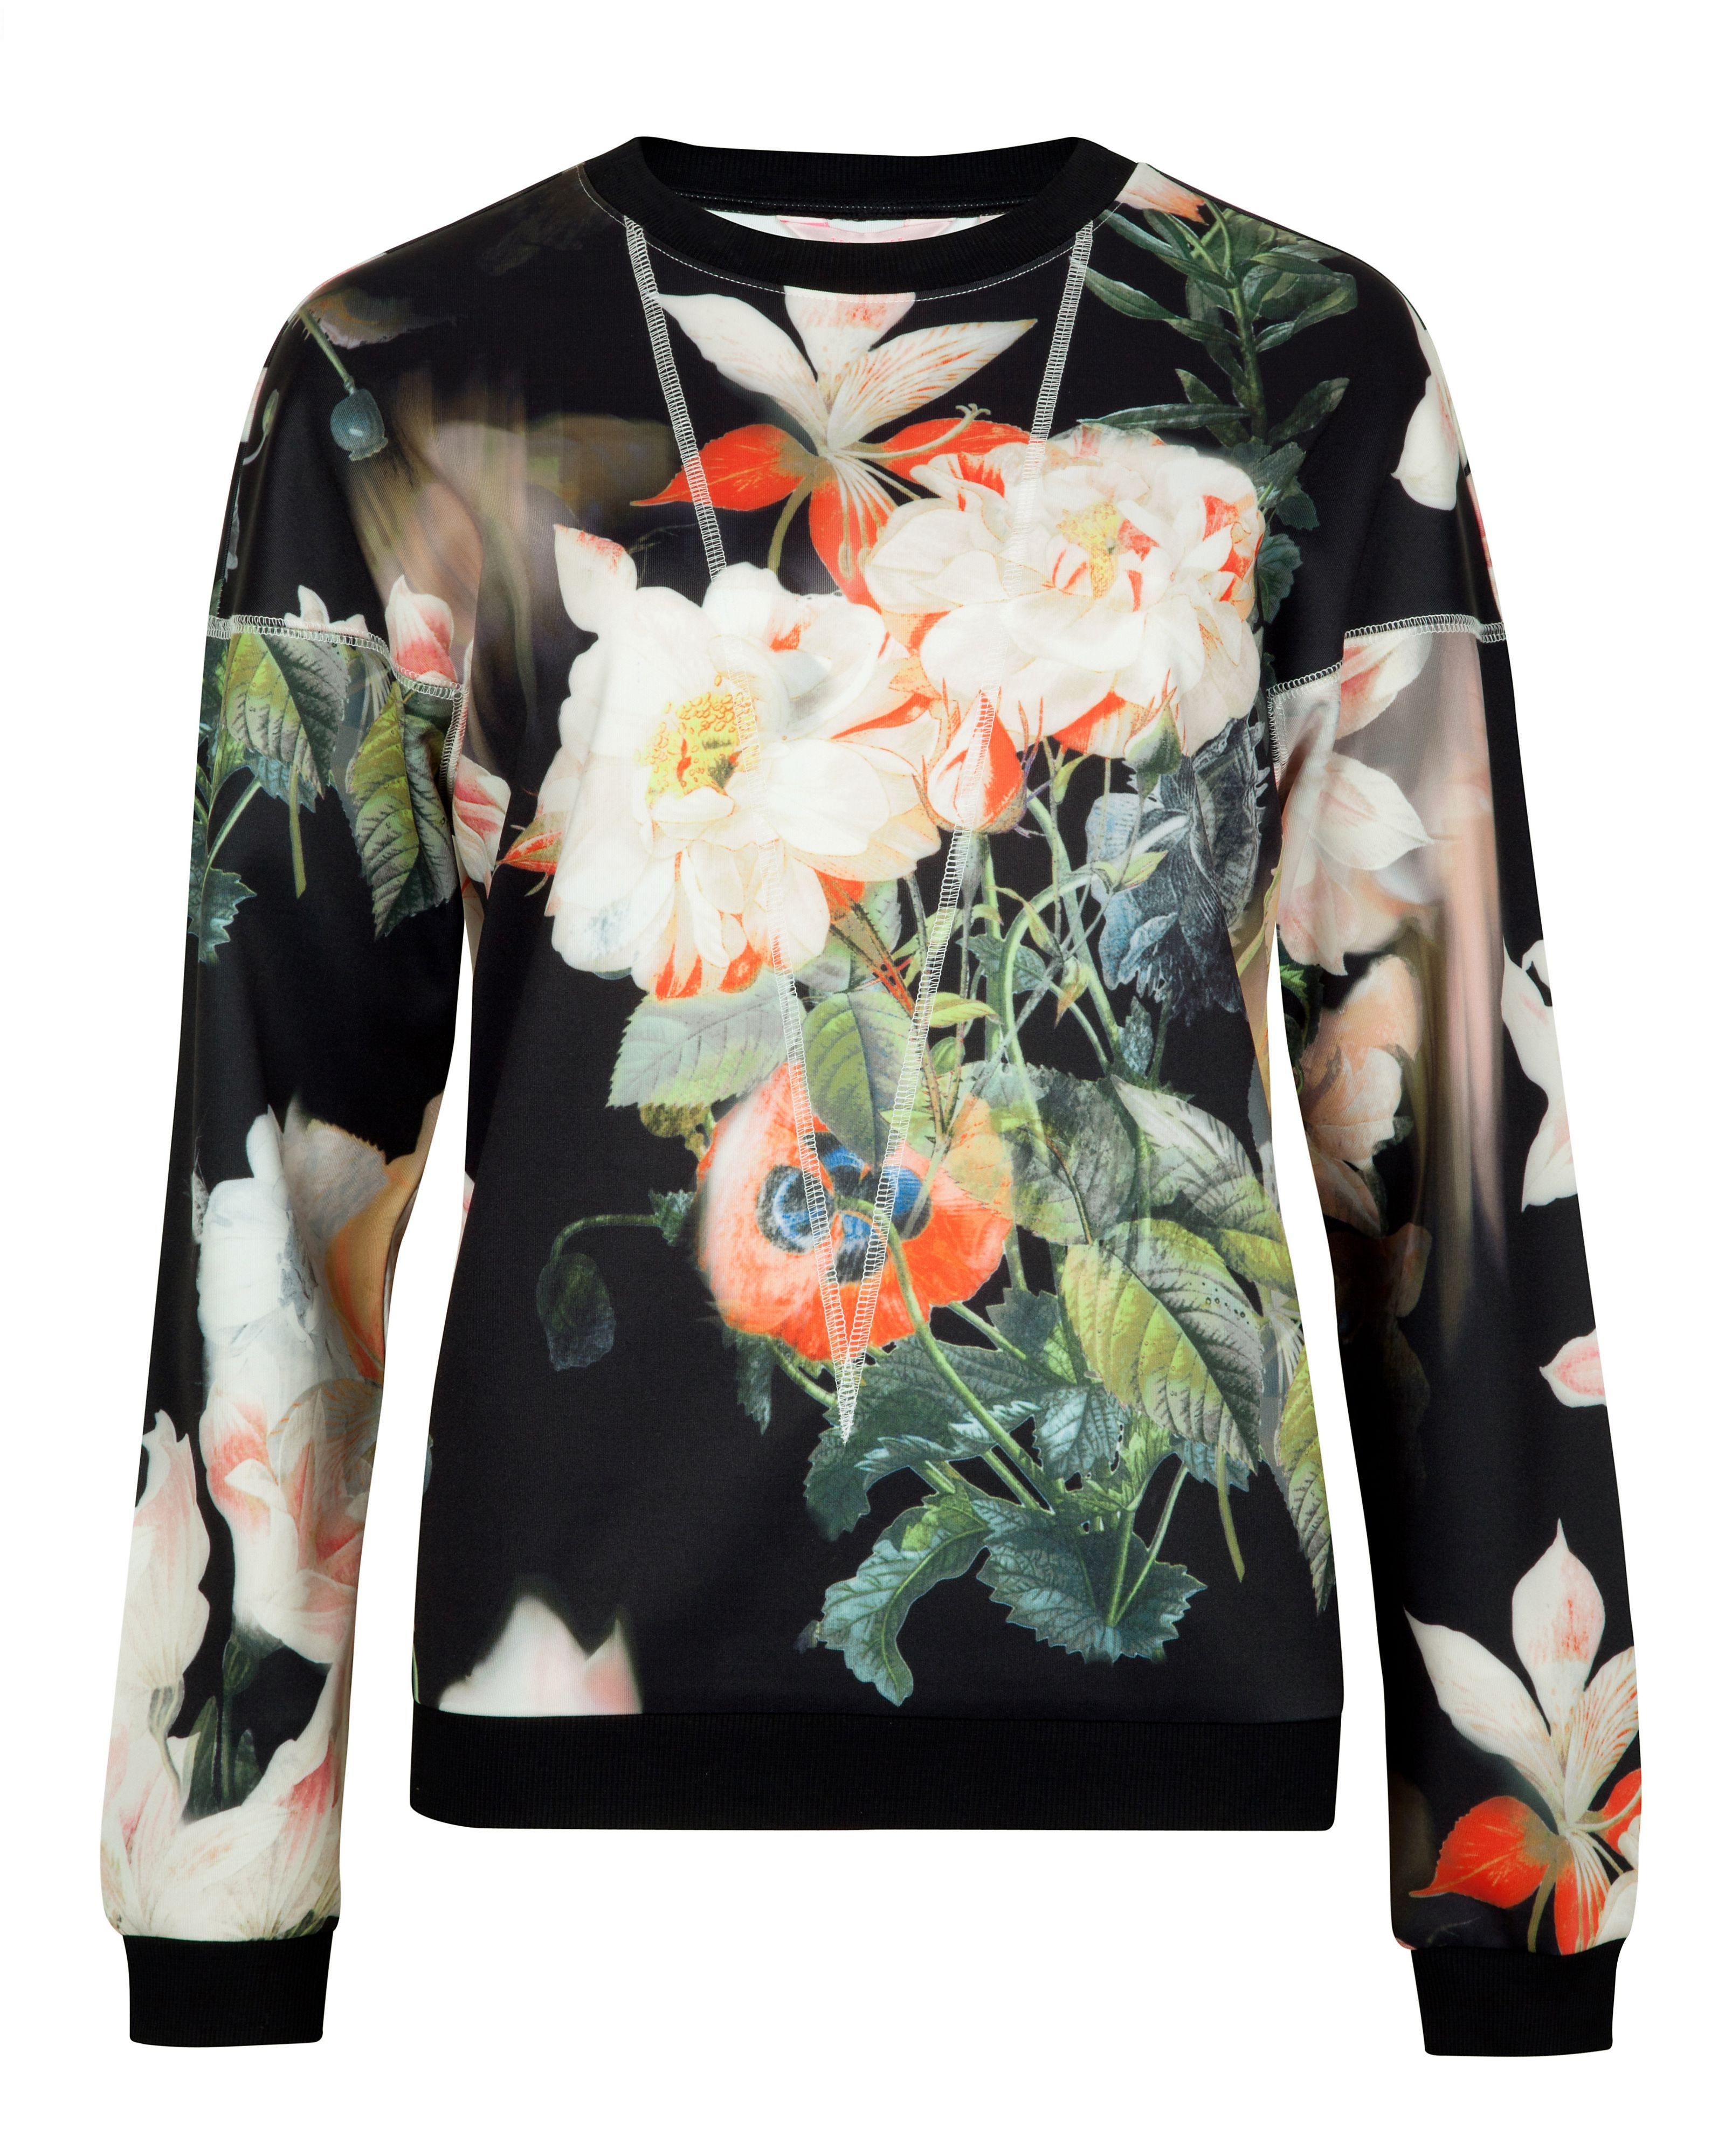 Dembrr opulent bloom print sweater